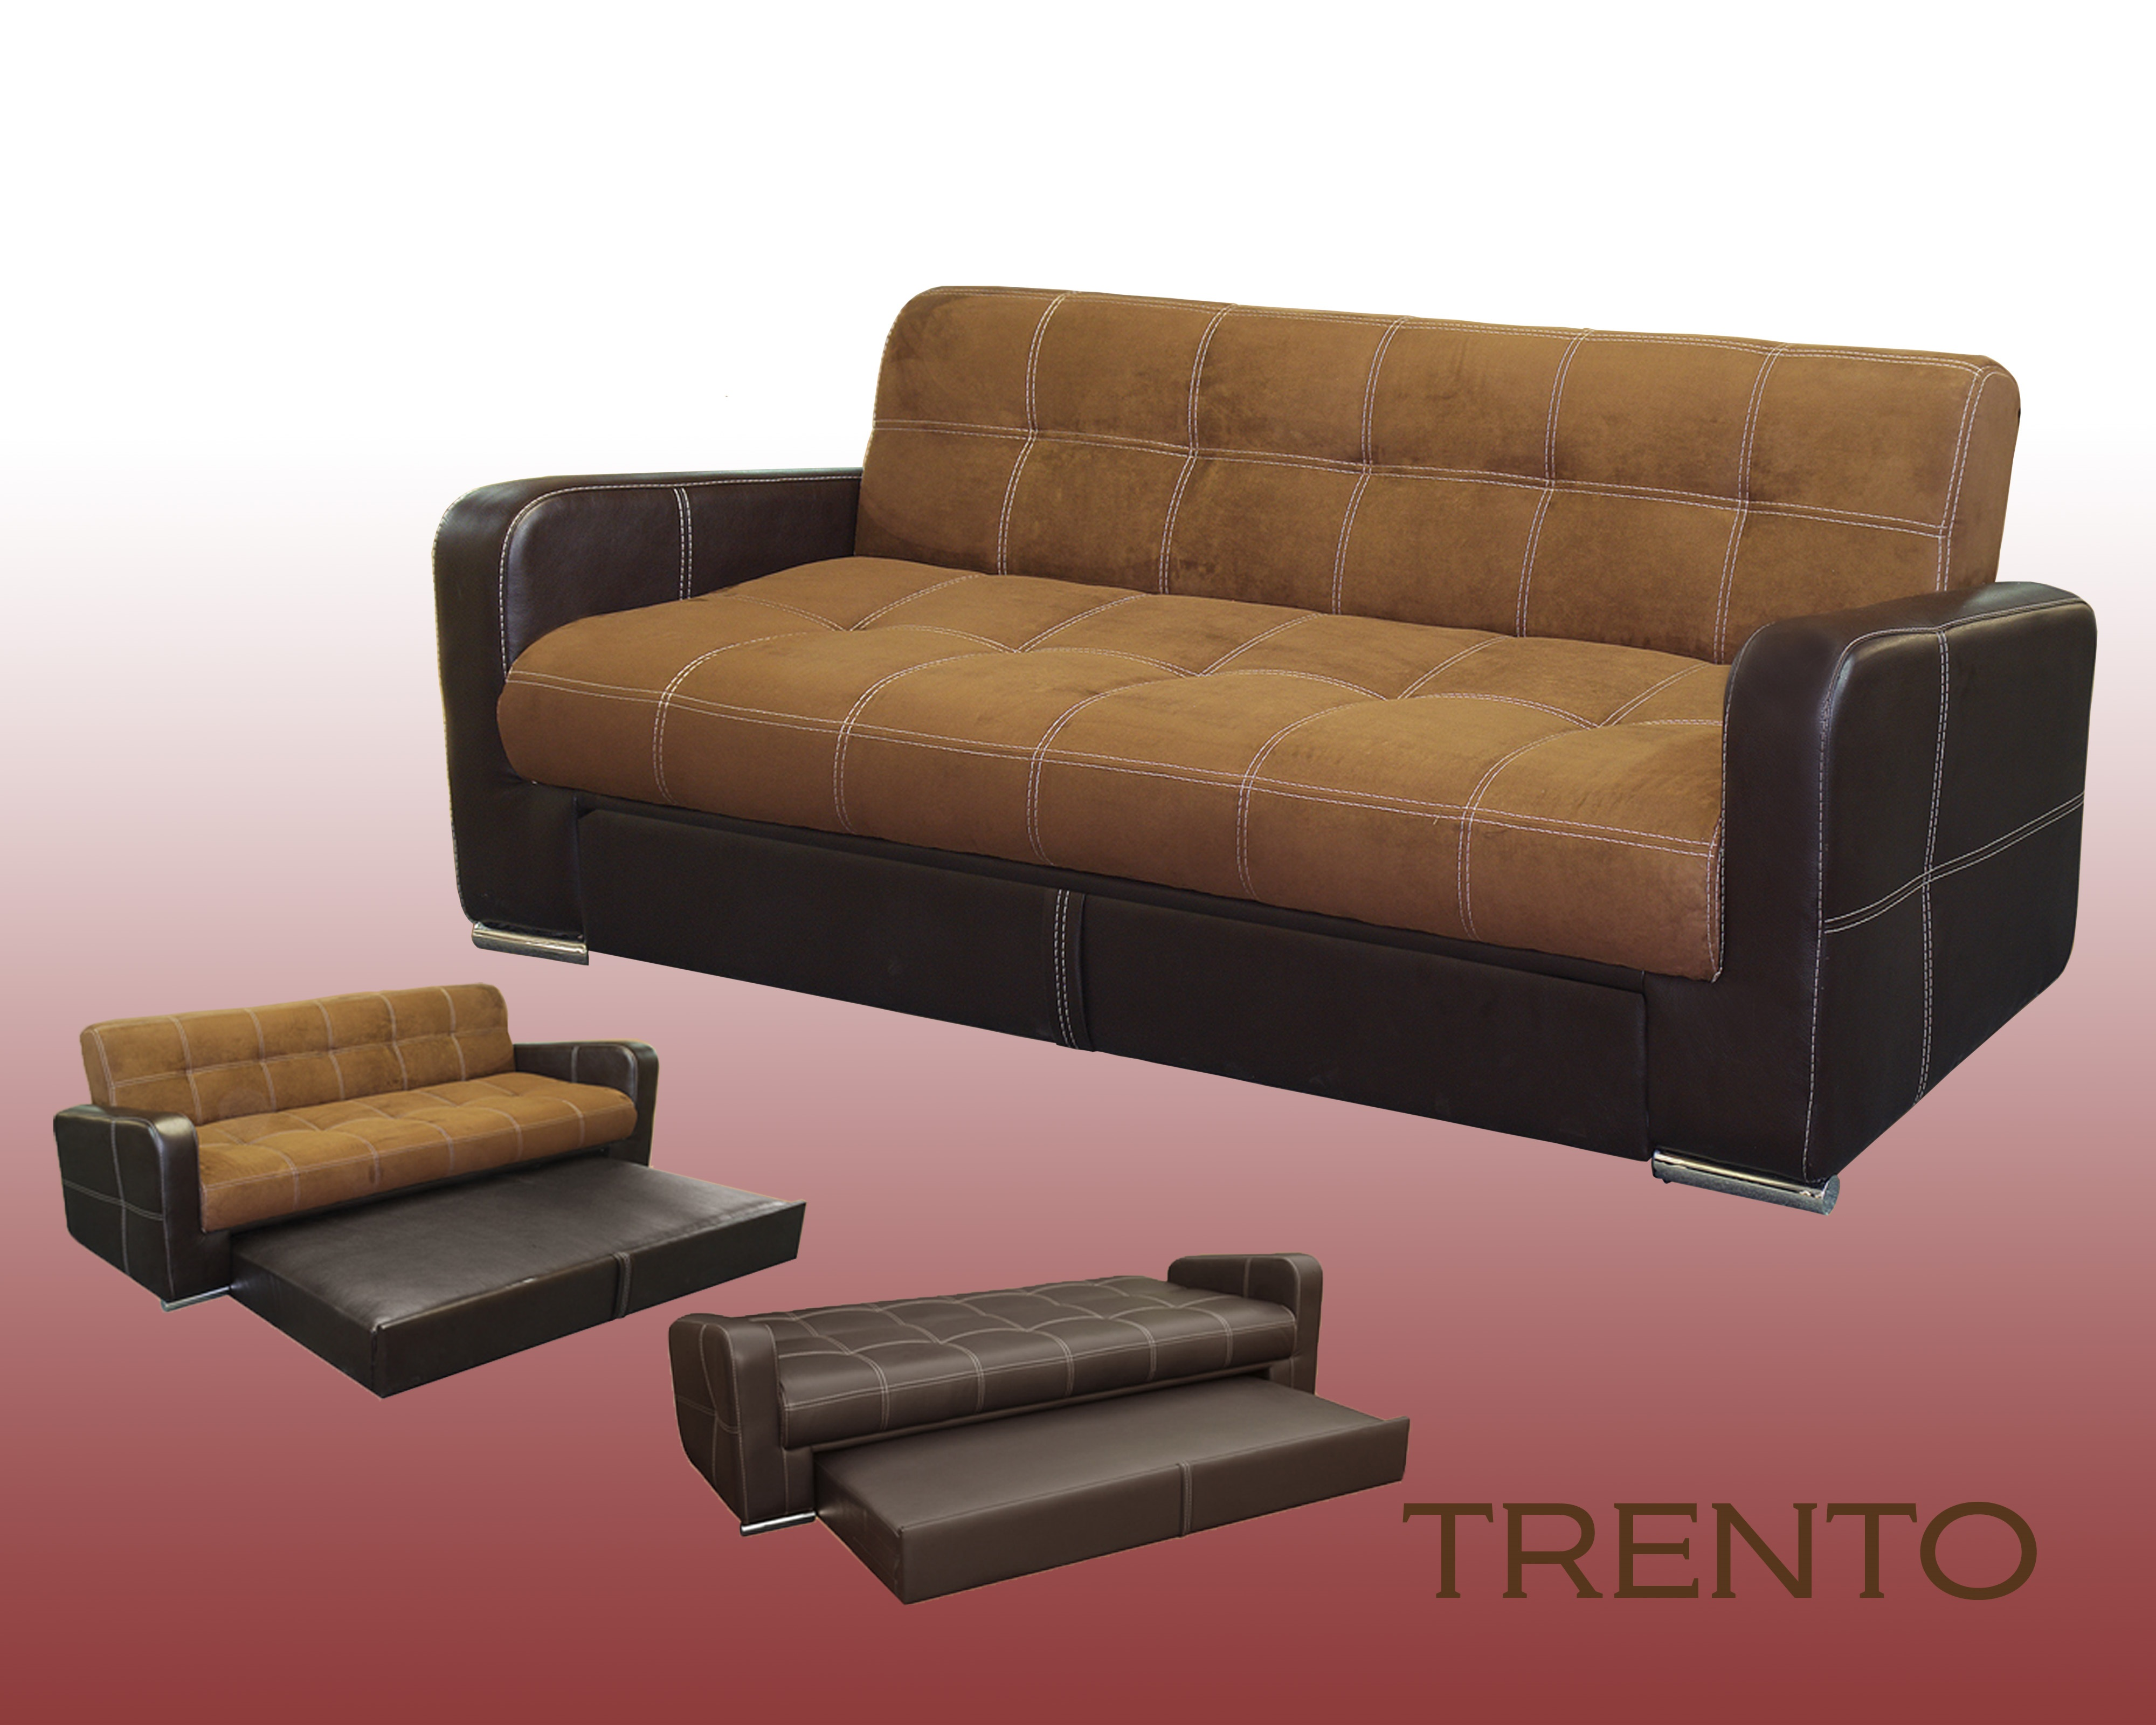 mexico futon sofa bed with mattress chocolate wooden table legs 3 position trundle trenton mr